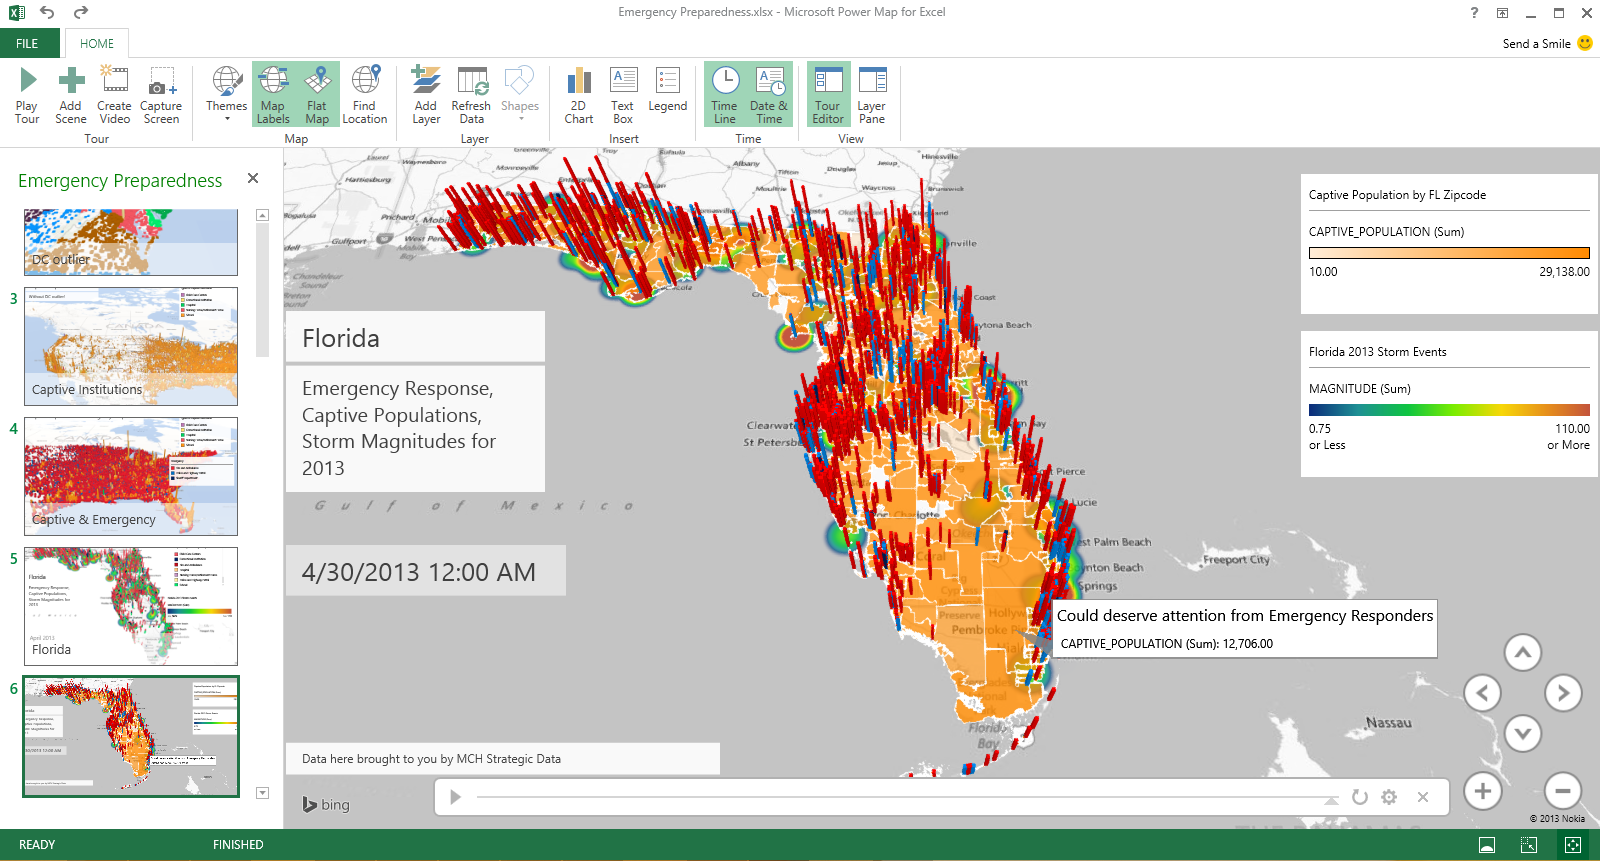 Ediblewildsus  Winsome Power Map For Excel Now Generally Available Automatically Updated  With Handsome Power Map For Excel Now Generally Available Automatically Updated For Office  With Agreeable Freezing A Row In Excel Also Excel Autofill Date In Addition How To Freeze Both Rows And Columns In Excel And Excel Consultant As Well As Excel Find Value Additionally Insert Checkmark In Excel From Powerbimicrosoftcom With Ediblewildsus  Handsome Power Map For Excel Now Generally Available Automatically Updated  With Agreeable Power Map For Excel Now Generally Available Automatically Updated For Office  And Winsome Freezing A Row In Excel Also Excel Autofill Date In Addition How To Freeze Both Rows And Columns In Excel From Powerbimicrosoftcom